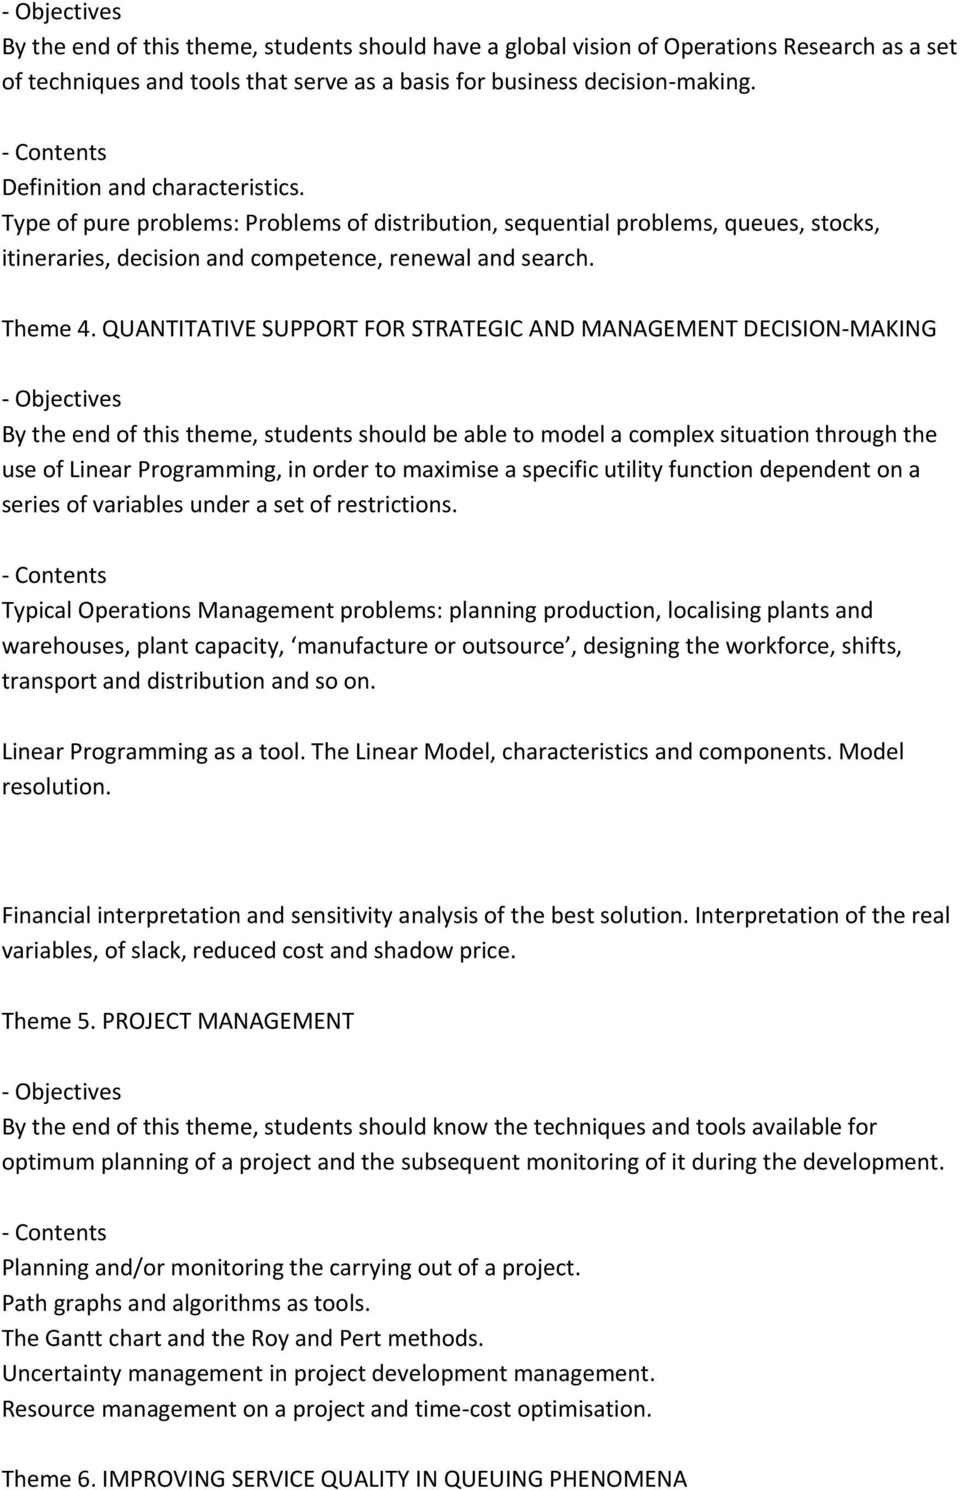 characteristics of linear programming in operations research